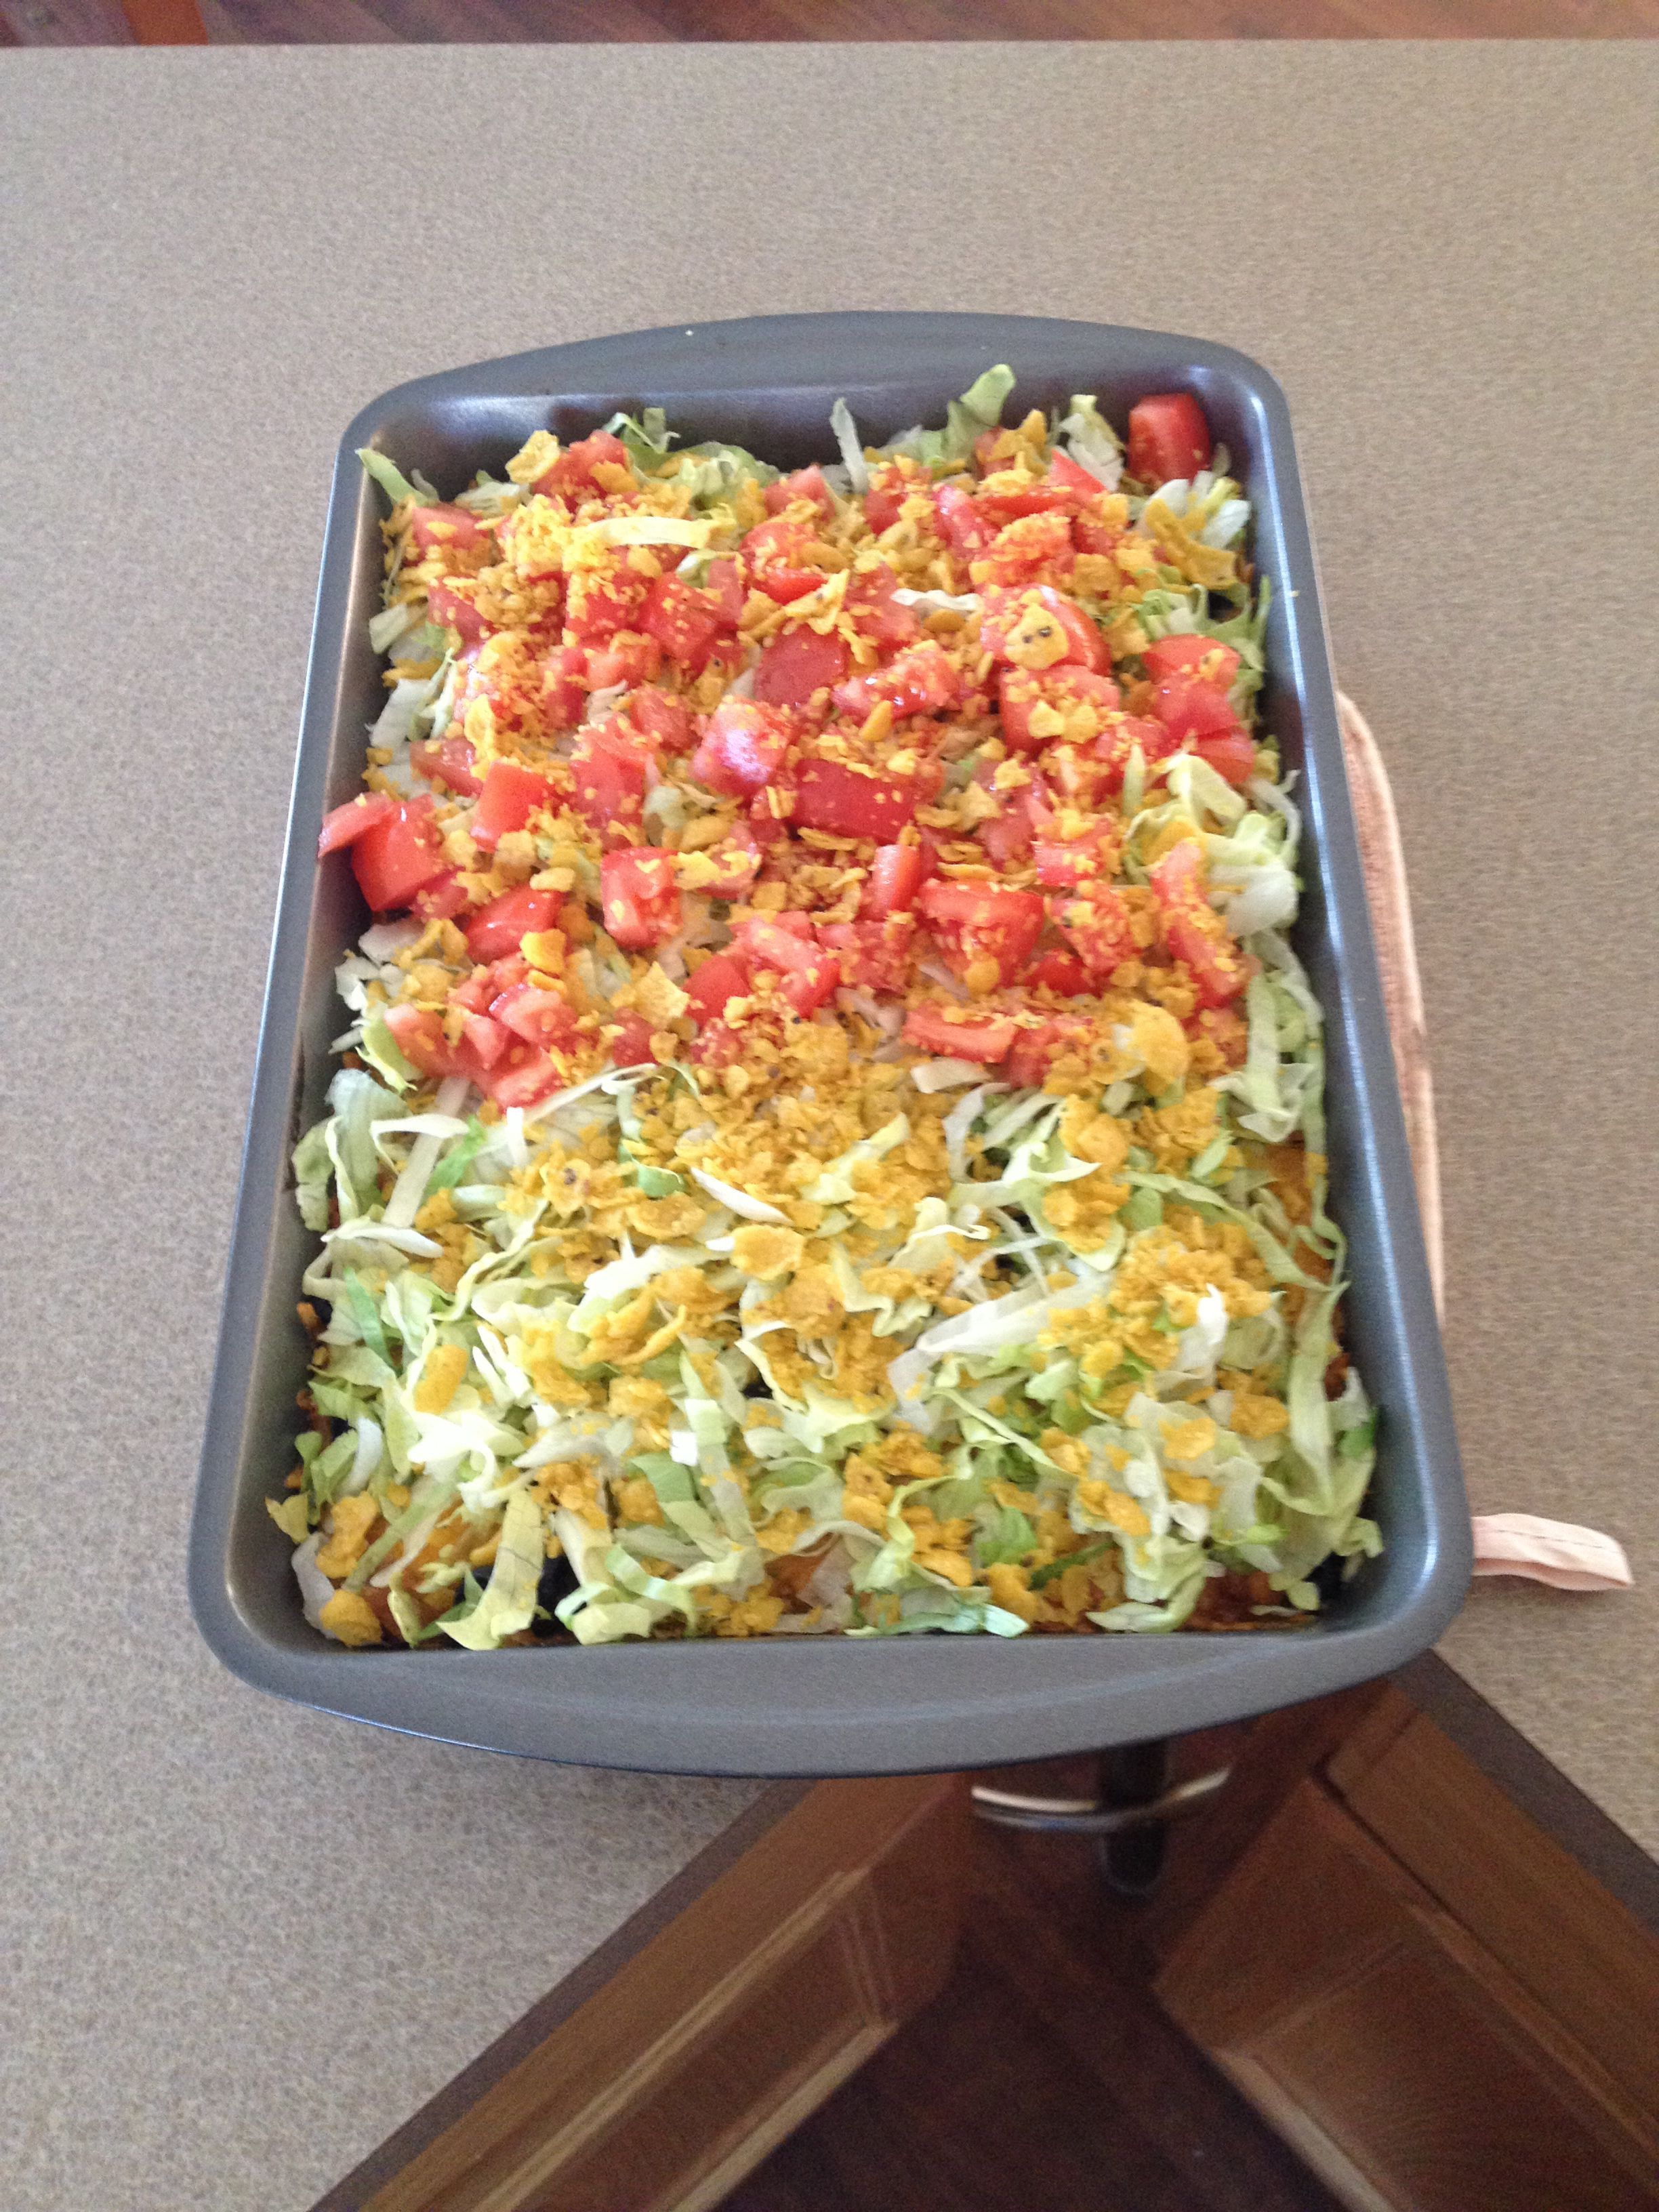 Beef and Bean Taco Casserole for my Mom's birthday 01/26/2014